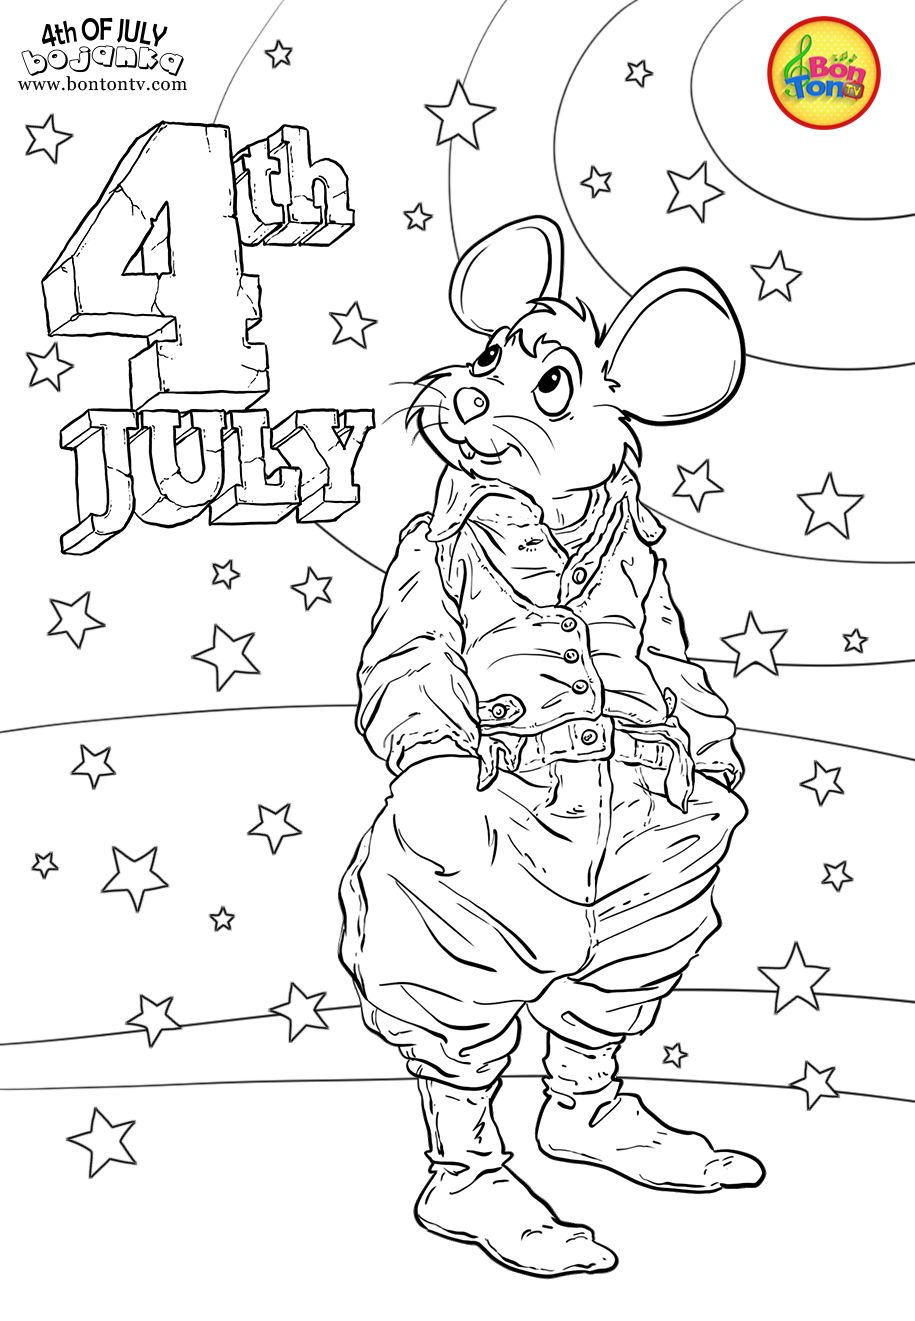 Independence Day Fourth Of July July 4th 4th Of July Usa America Free Printable Co Coloring Pages Printable Coloring Pages Free Printable Coloring Pages [ 1321 x 915 Pixel ]